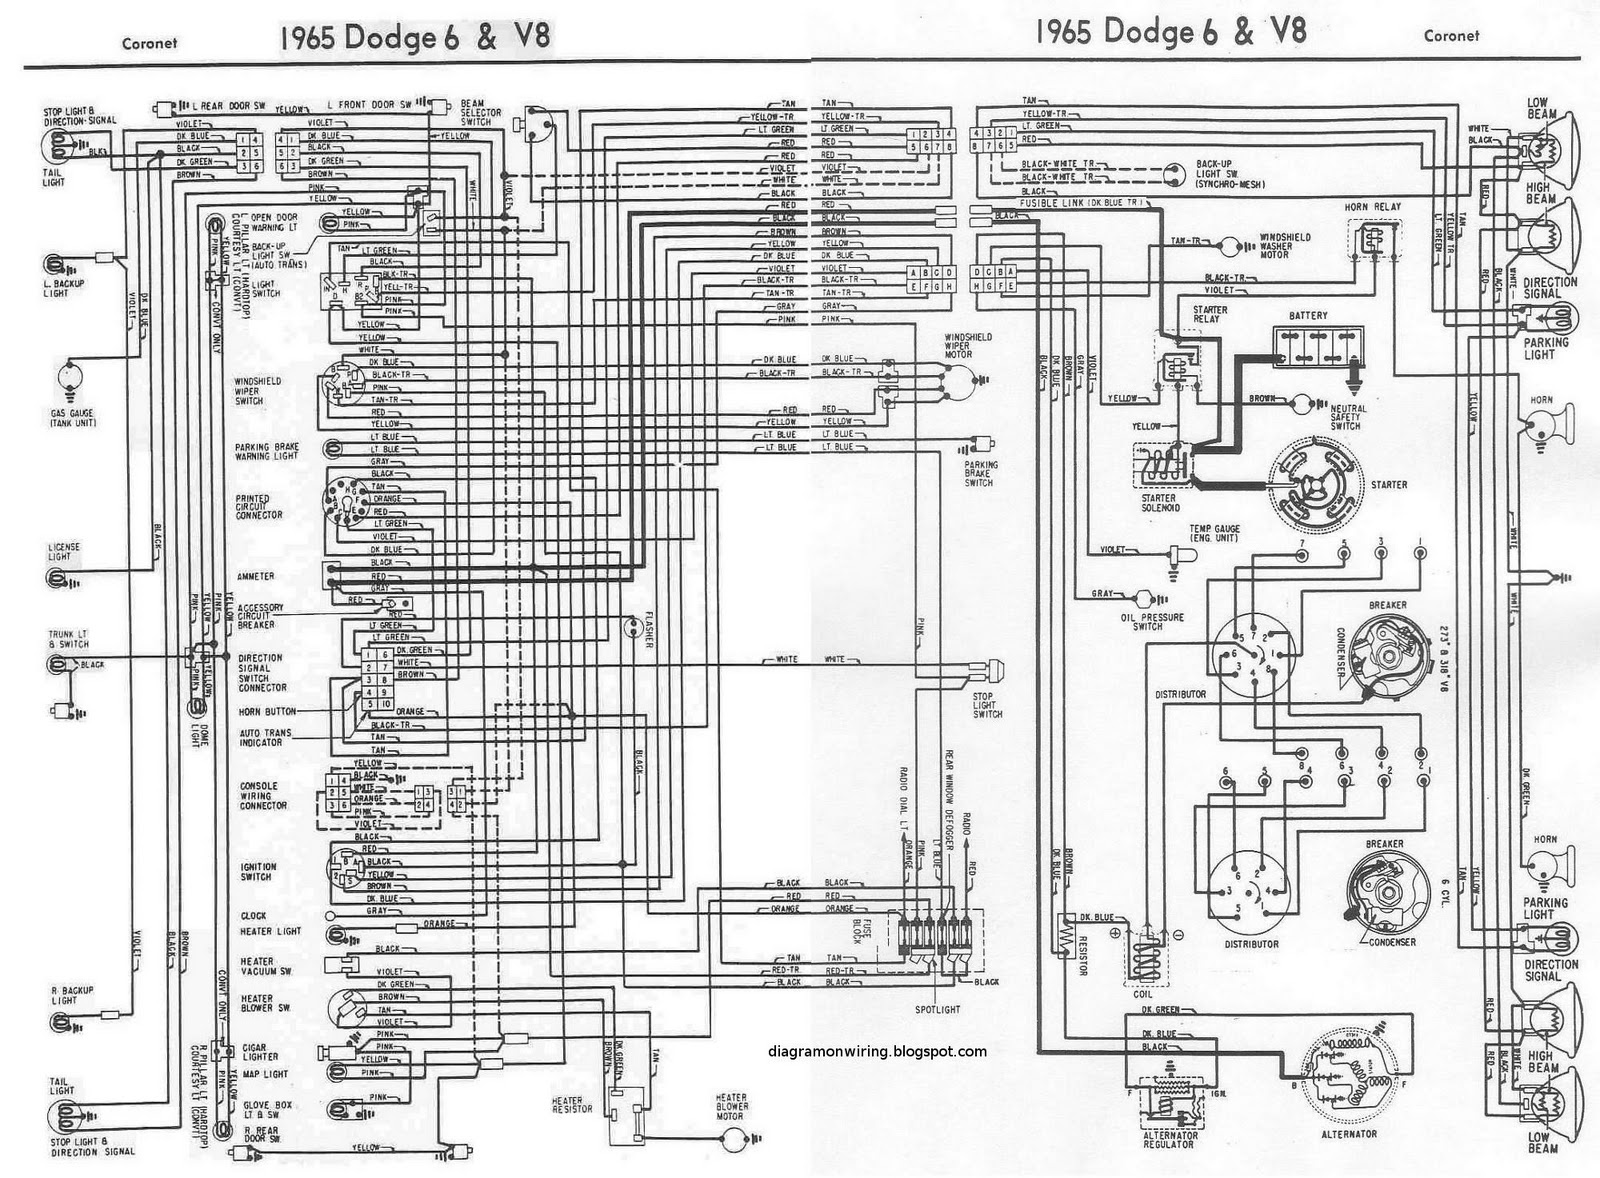 Cadillac Deville Power Window Wiring Further 67 Mustang Wiring Diagram